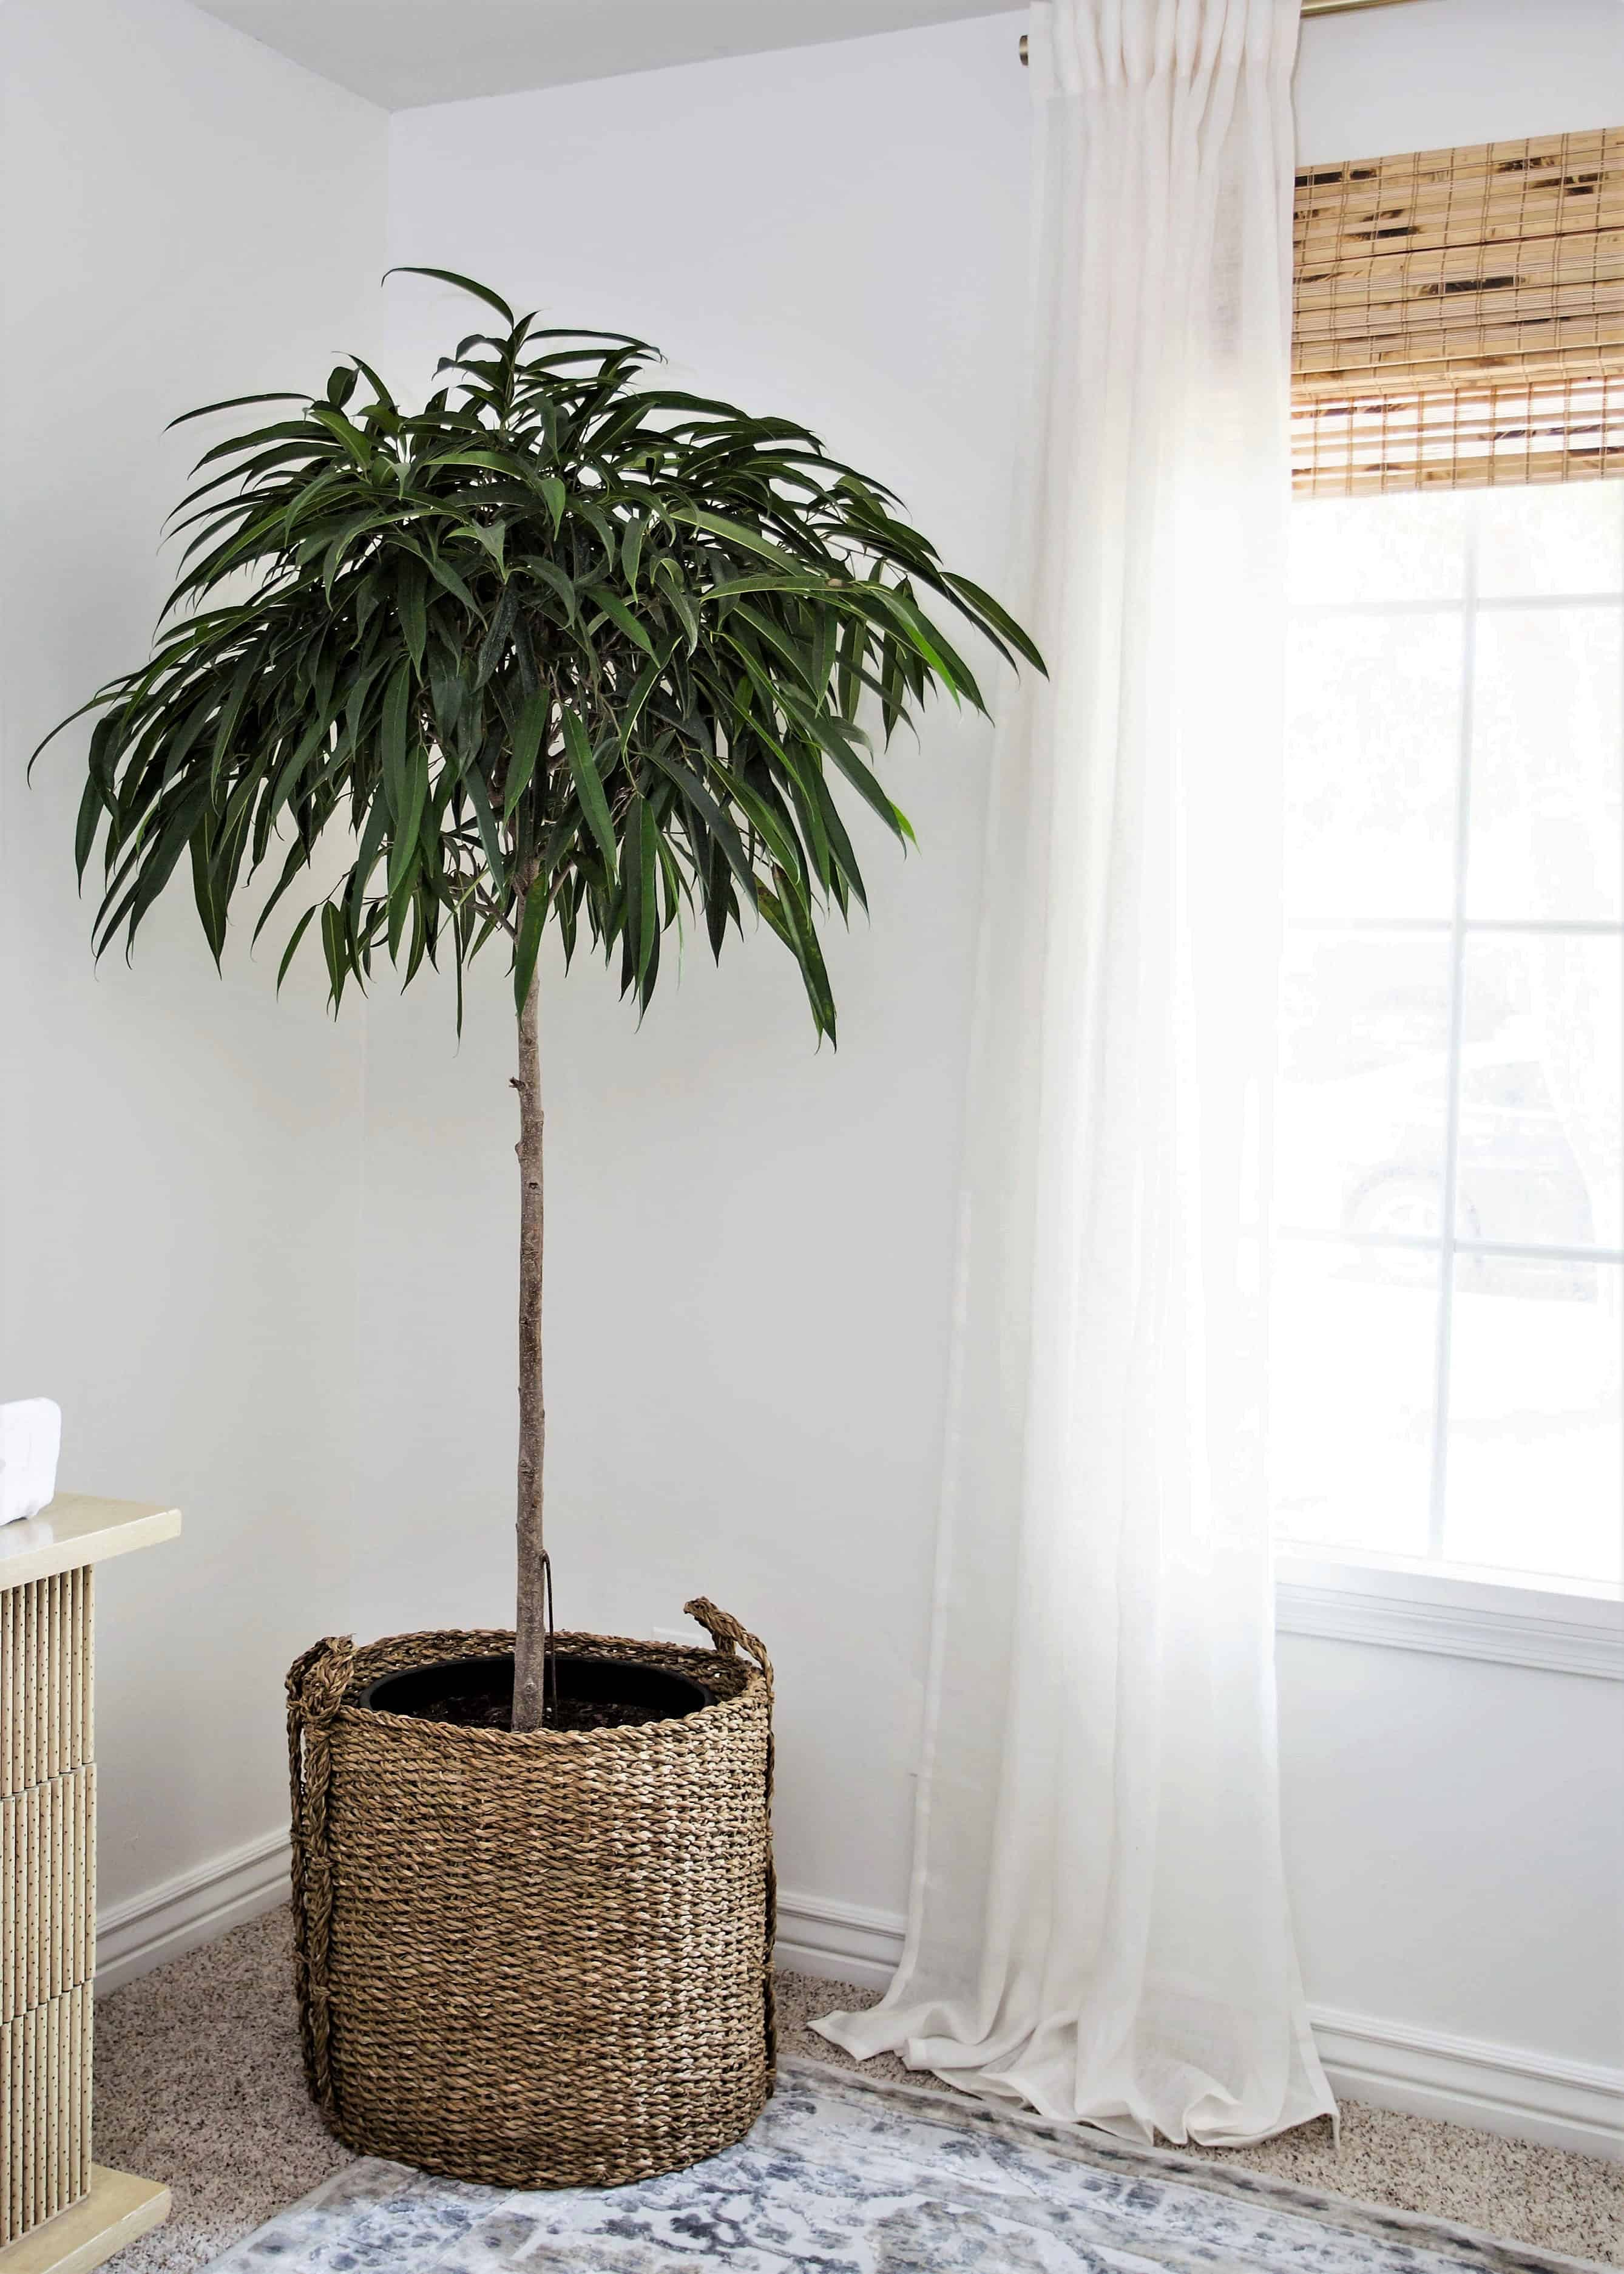 tall green tree in a basket to the left of a window with bamboo shades and white sheer curtains